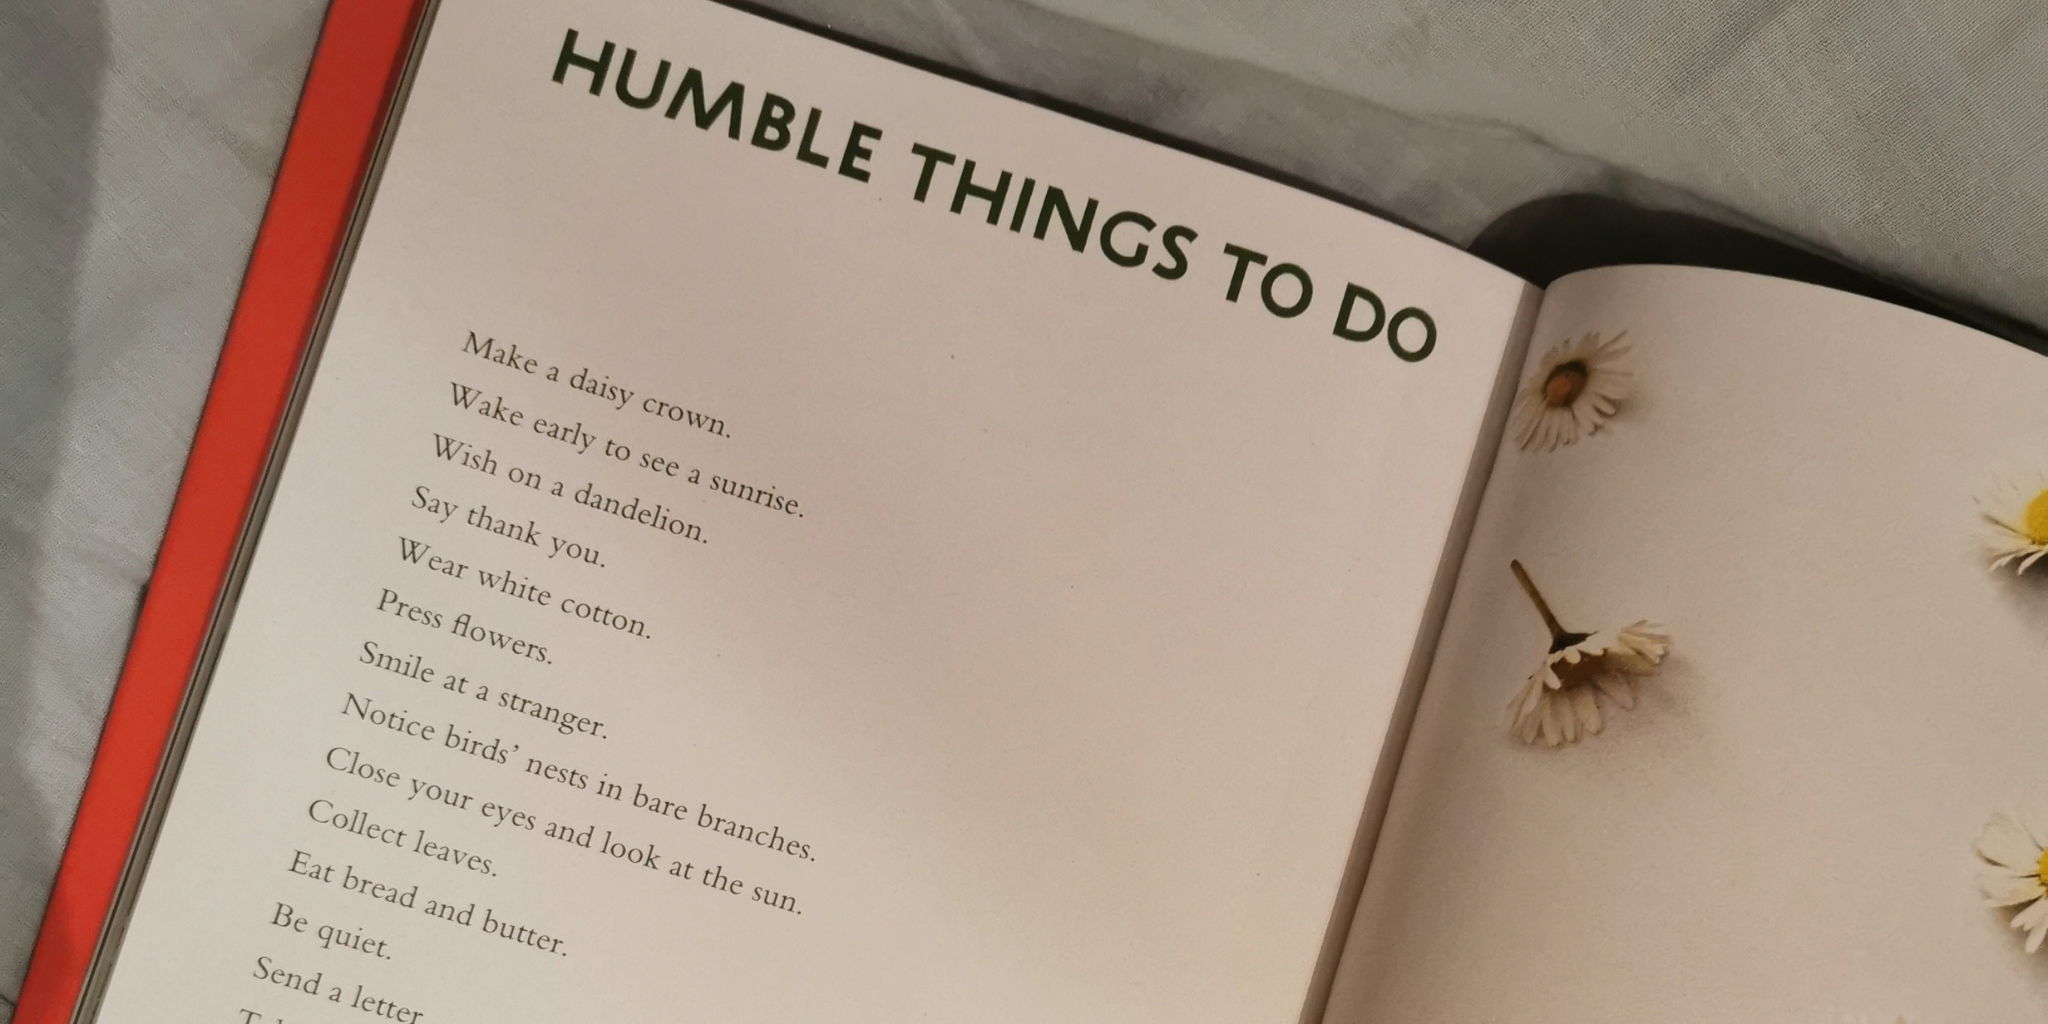 Humble Pleasures photo from Amy's Book